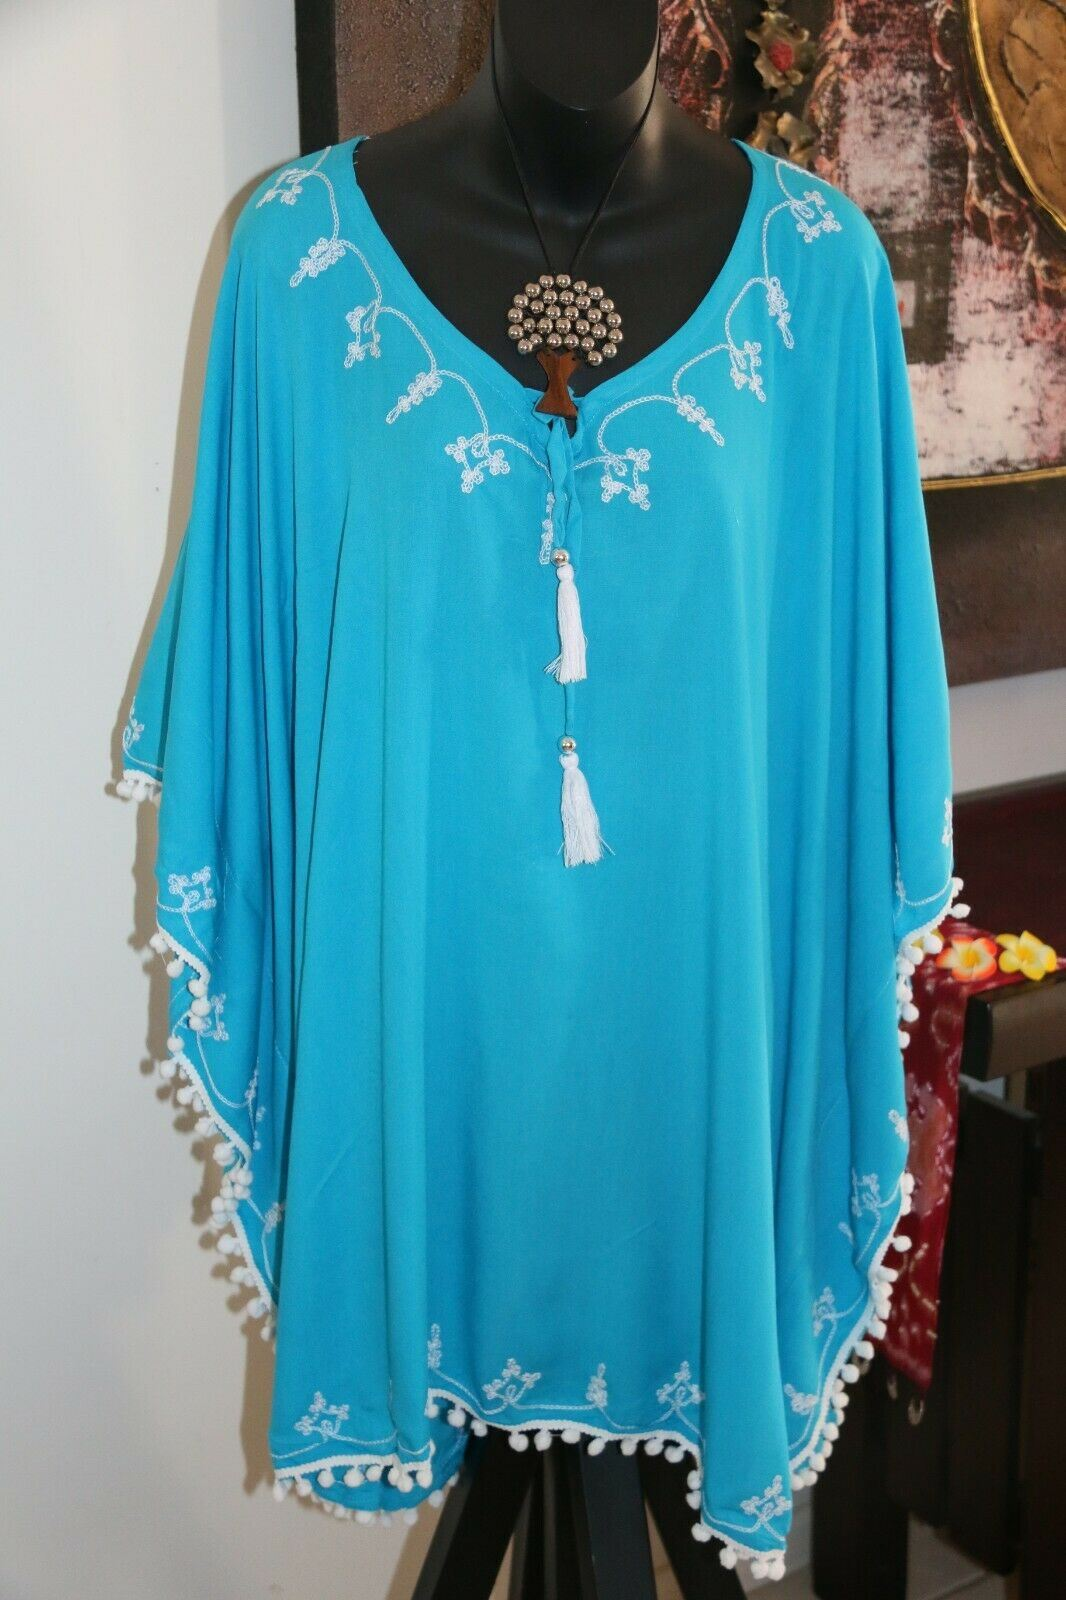 NEW Ladies Cotton Bali Kaftan Top/Dress - 3 Colours Perfect for over Swimmers